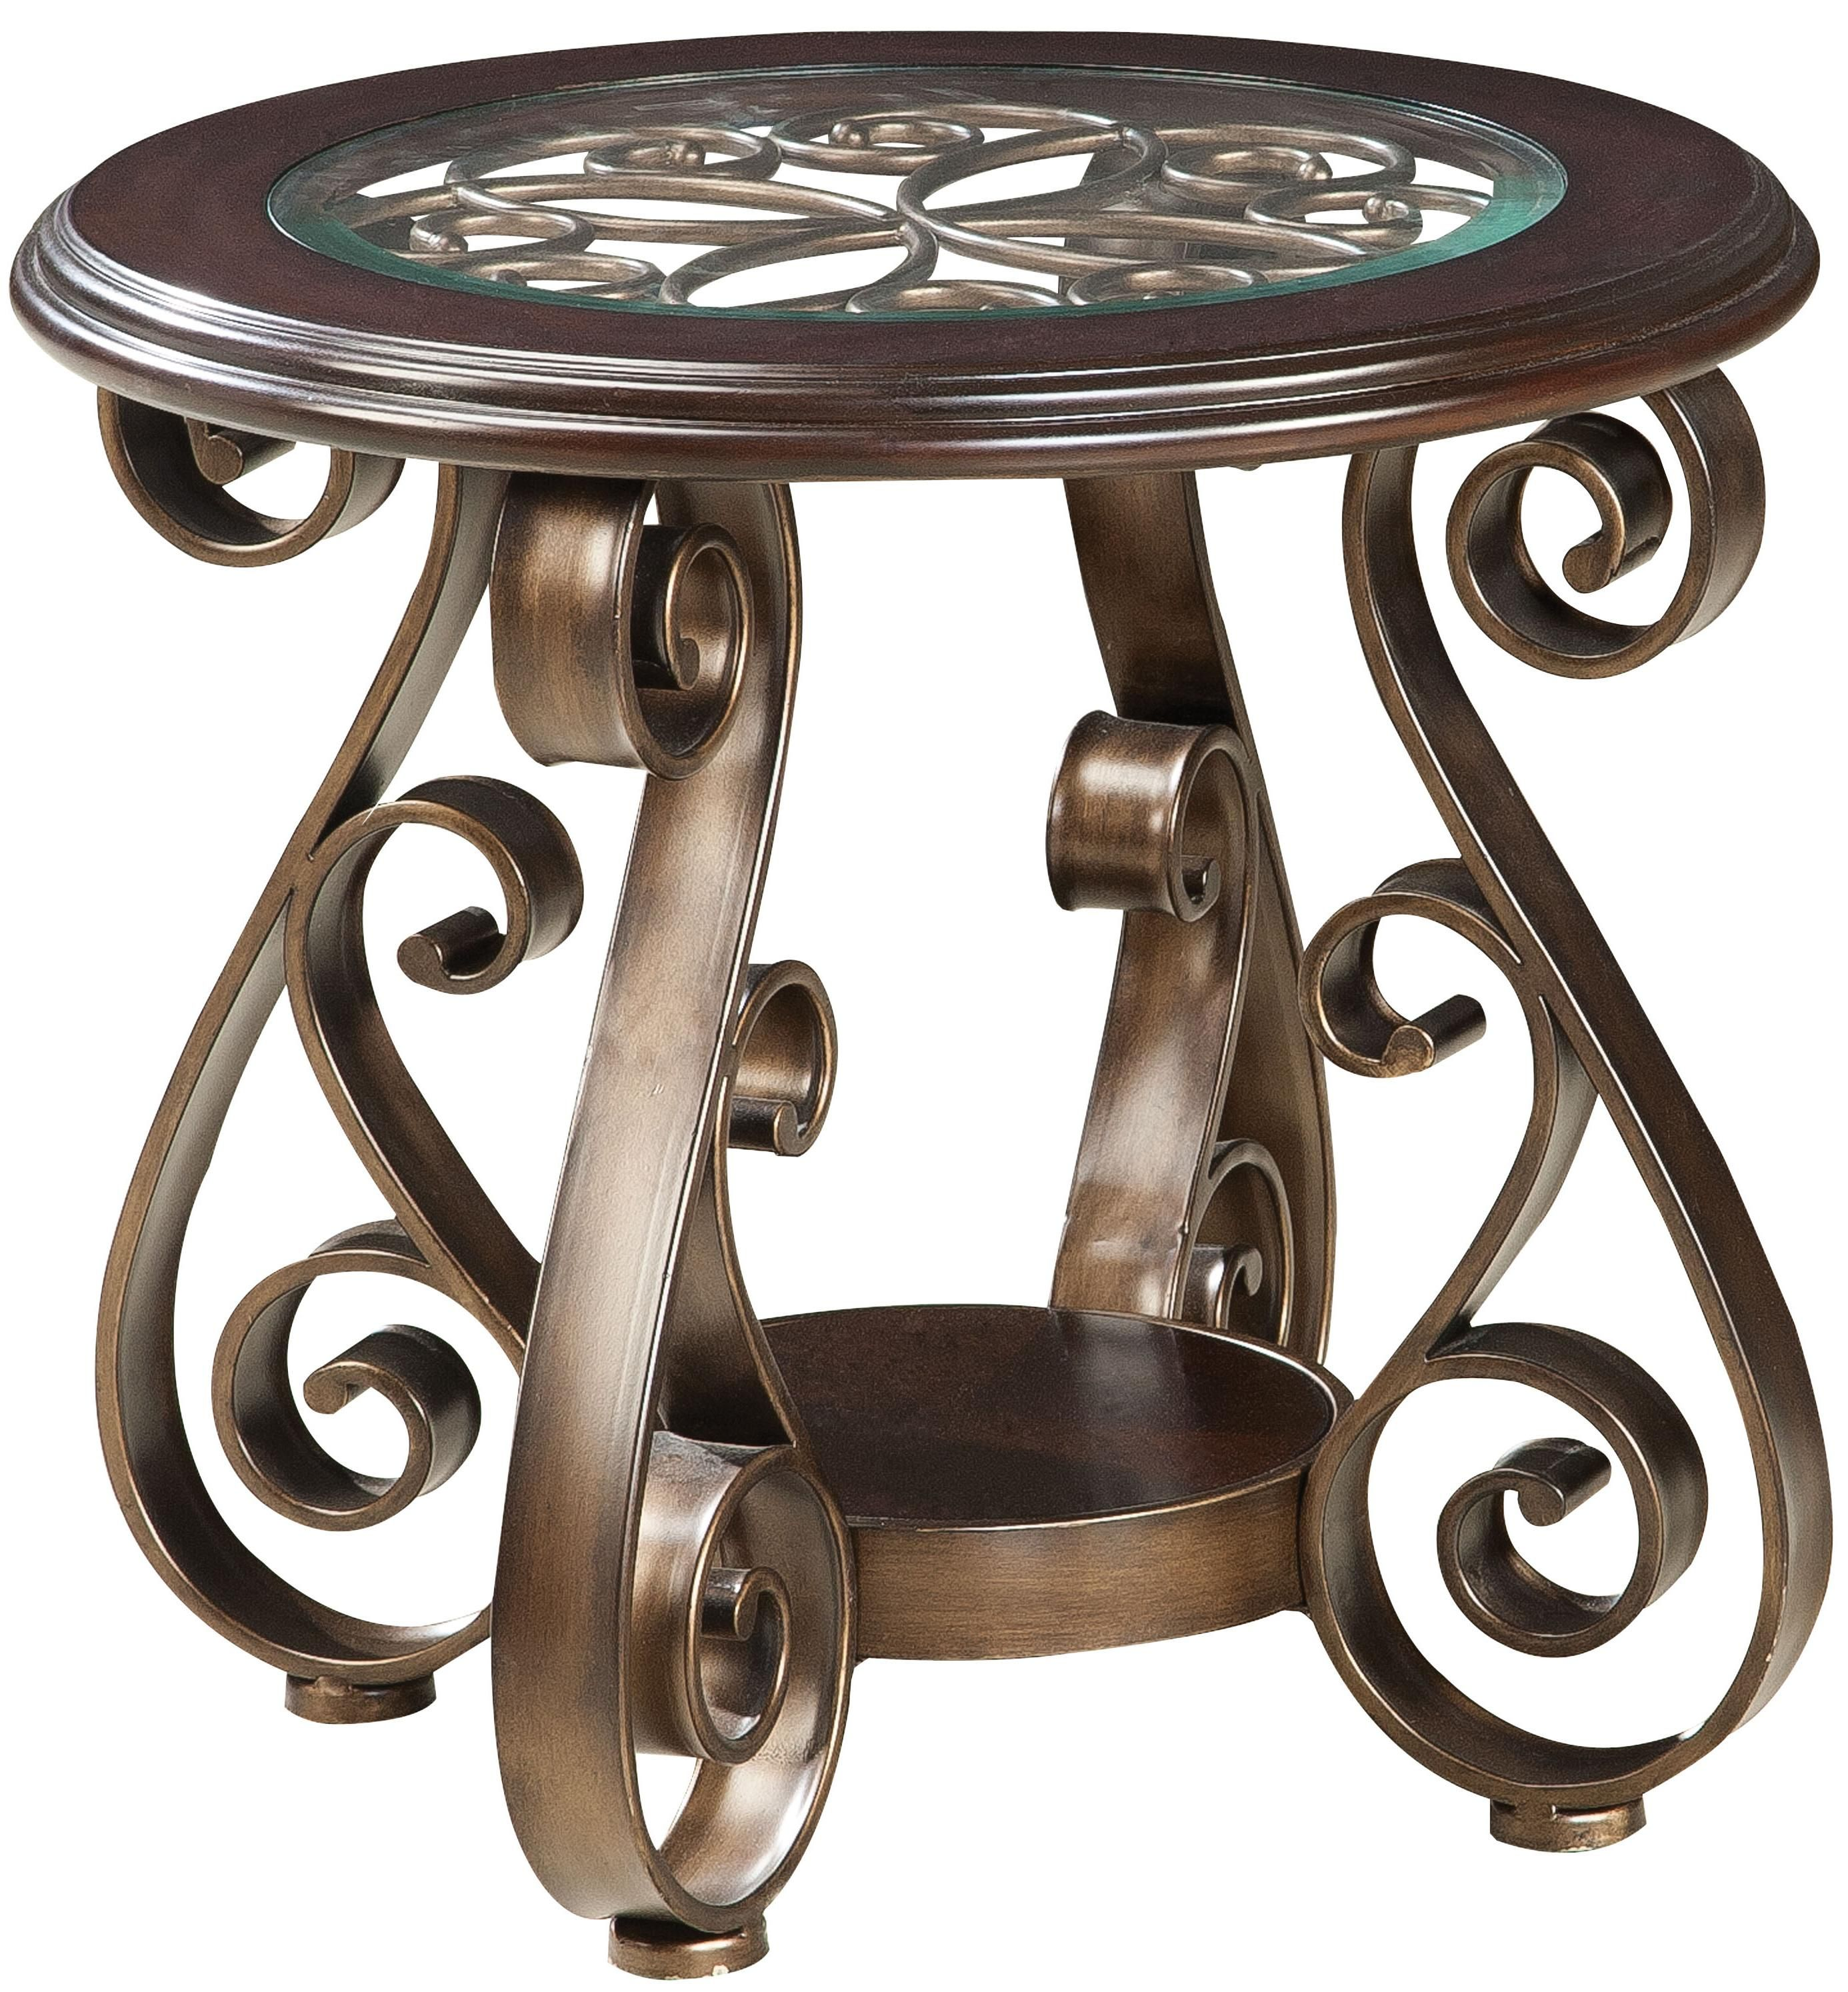 Standard Furniture Bombay Old World End Table With Glass Top And S